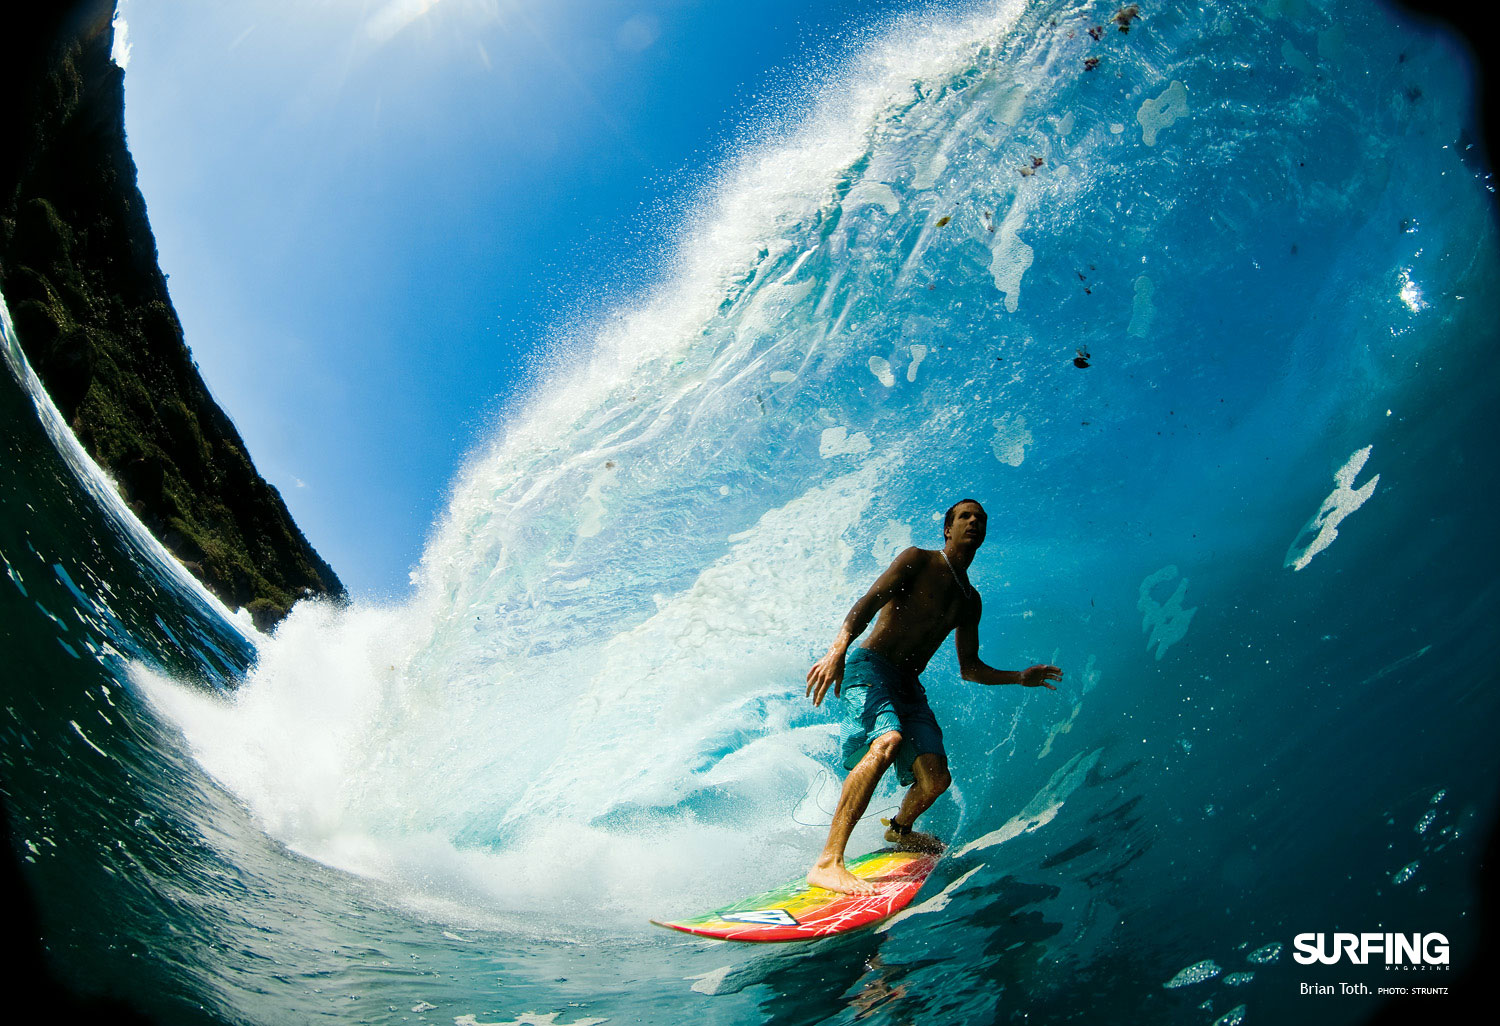 surfing desktop wallpaper 11 610x417 Desktop WallpapersAwesome Photos 1500x1026